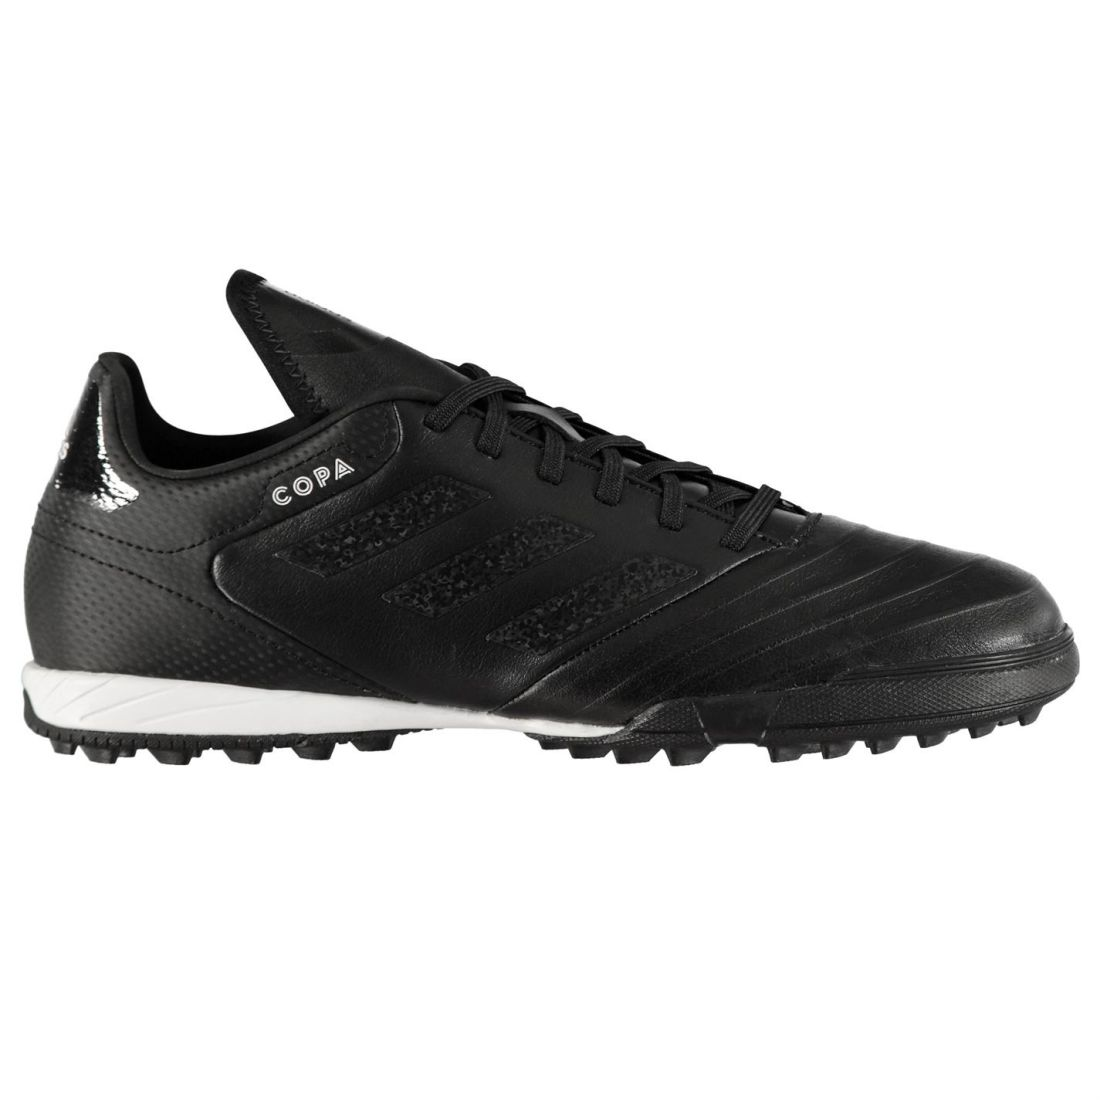 innovative design 849c6 efd29 adidas Mens Copa Tango 18.3 Astro Turf Trainers Football Boots Lace Up  Padded